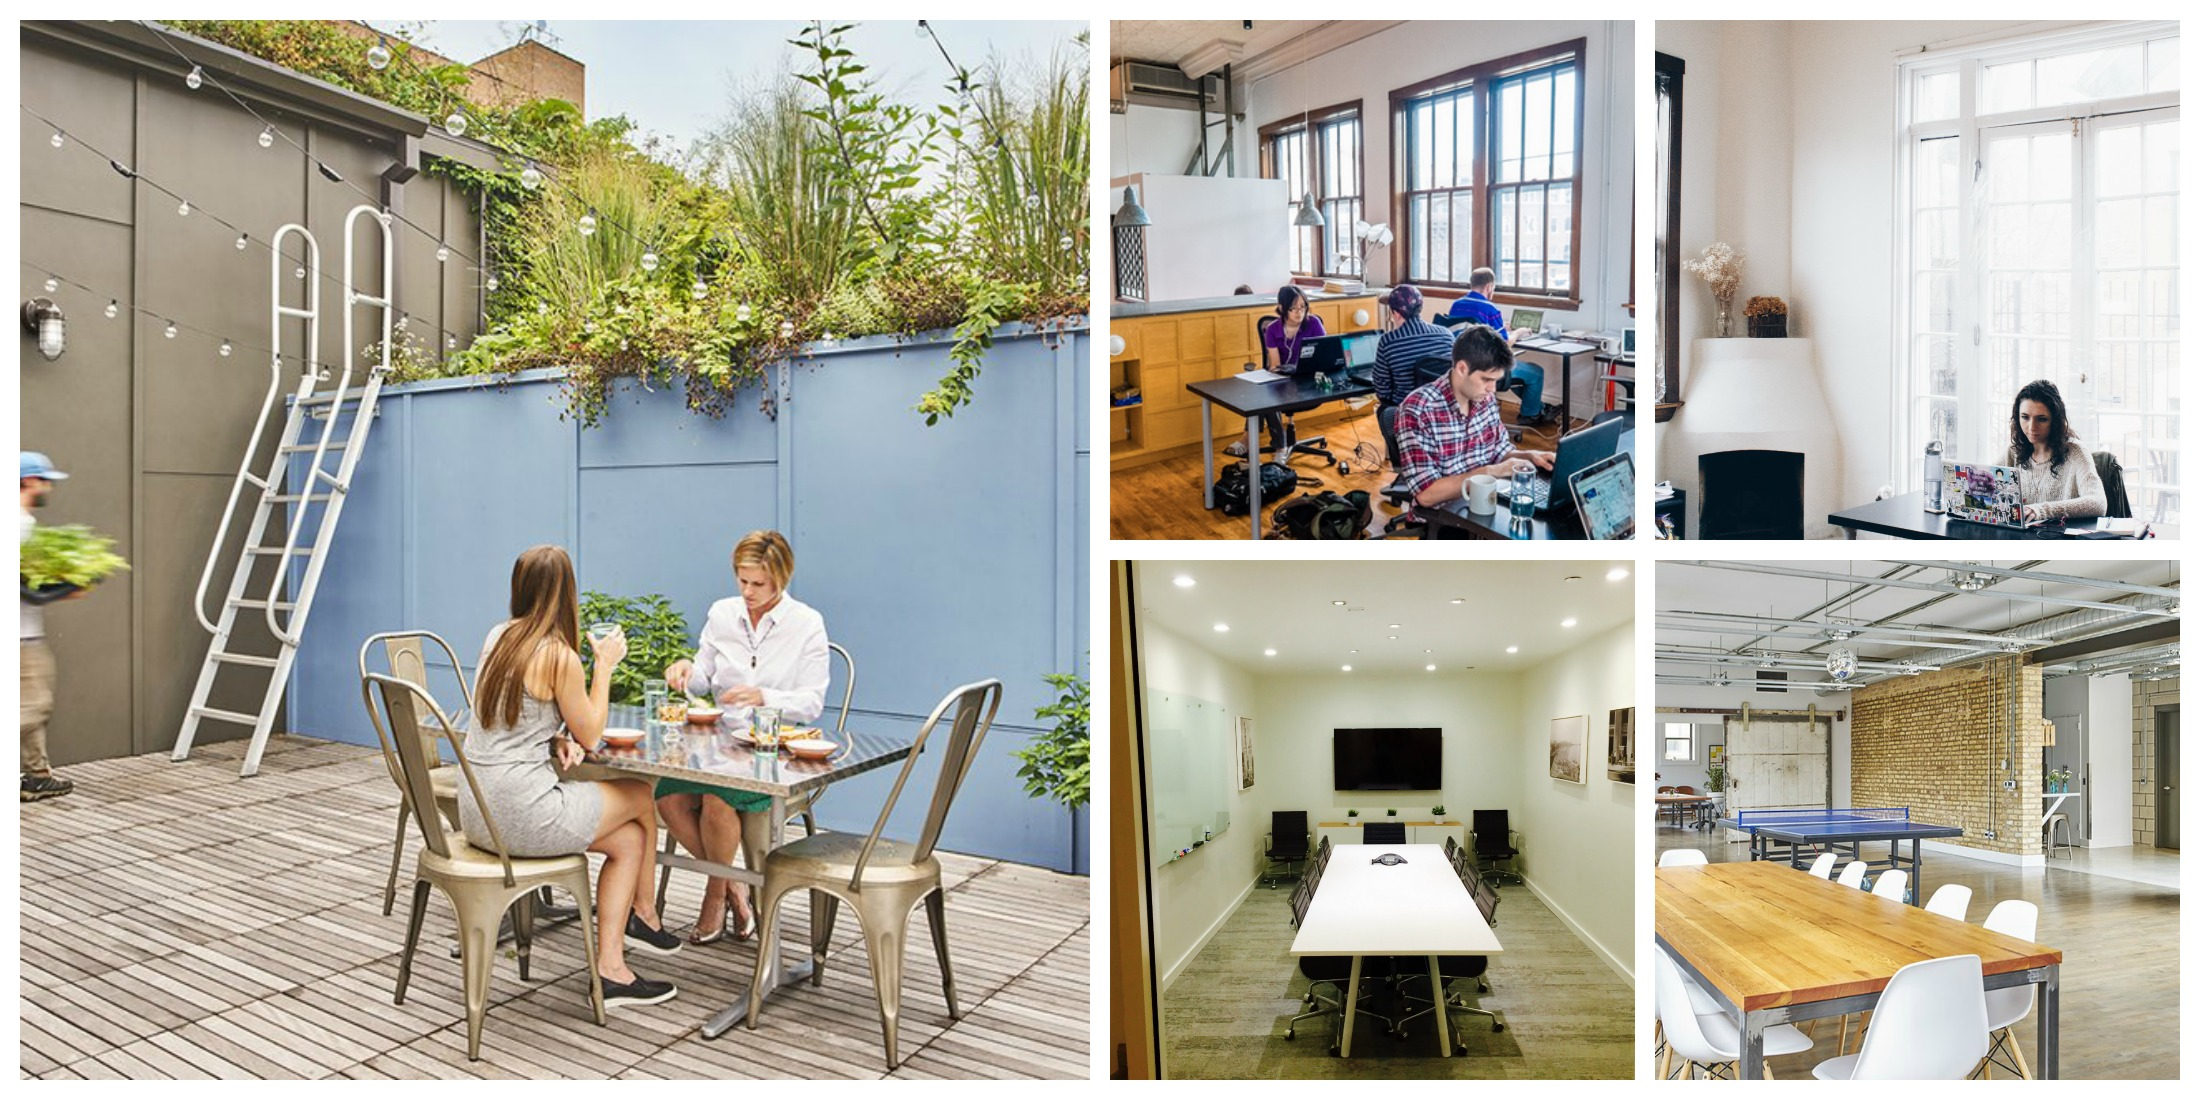 Coworking Around Chicago: An Inside Look At The Roof Crop, Officeport, U0026  Free Range